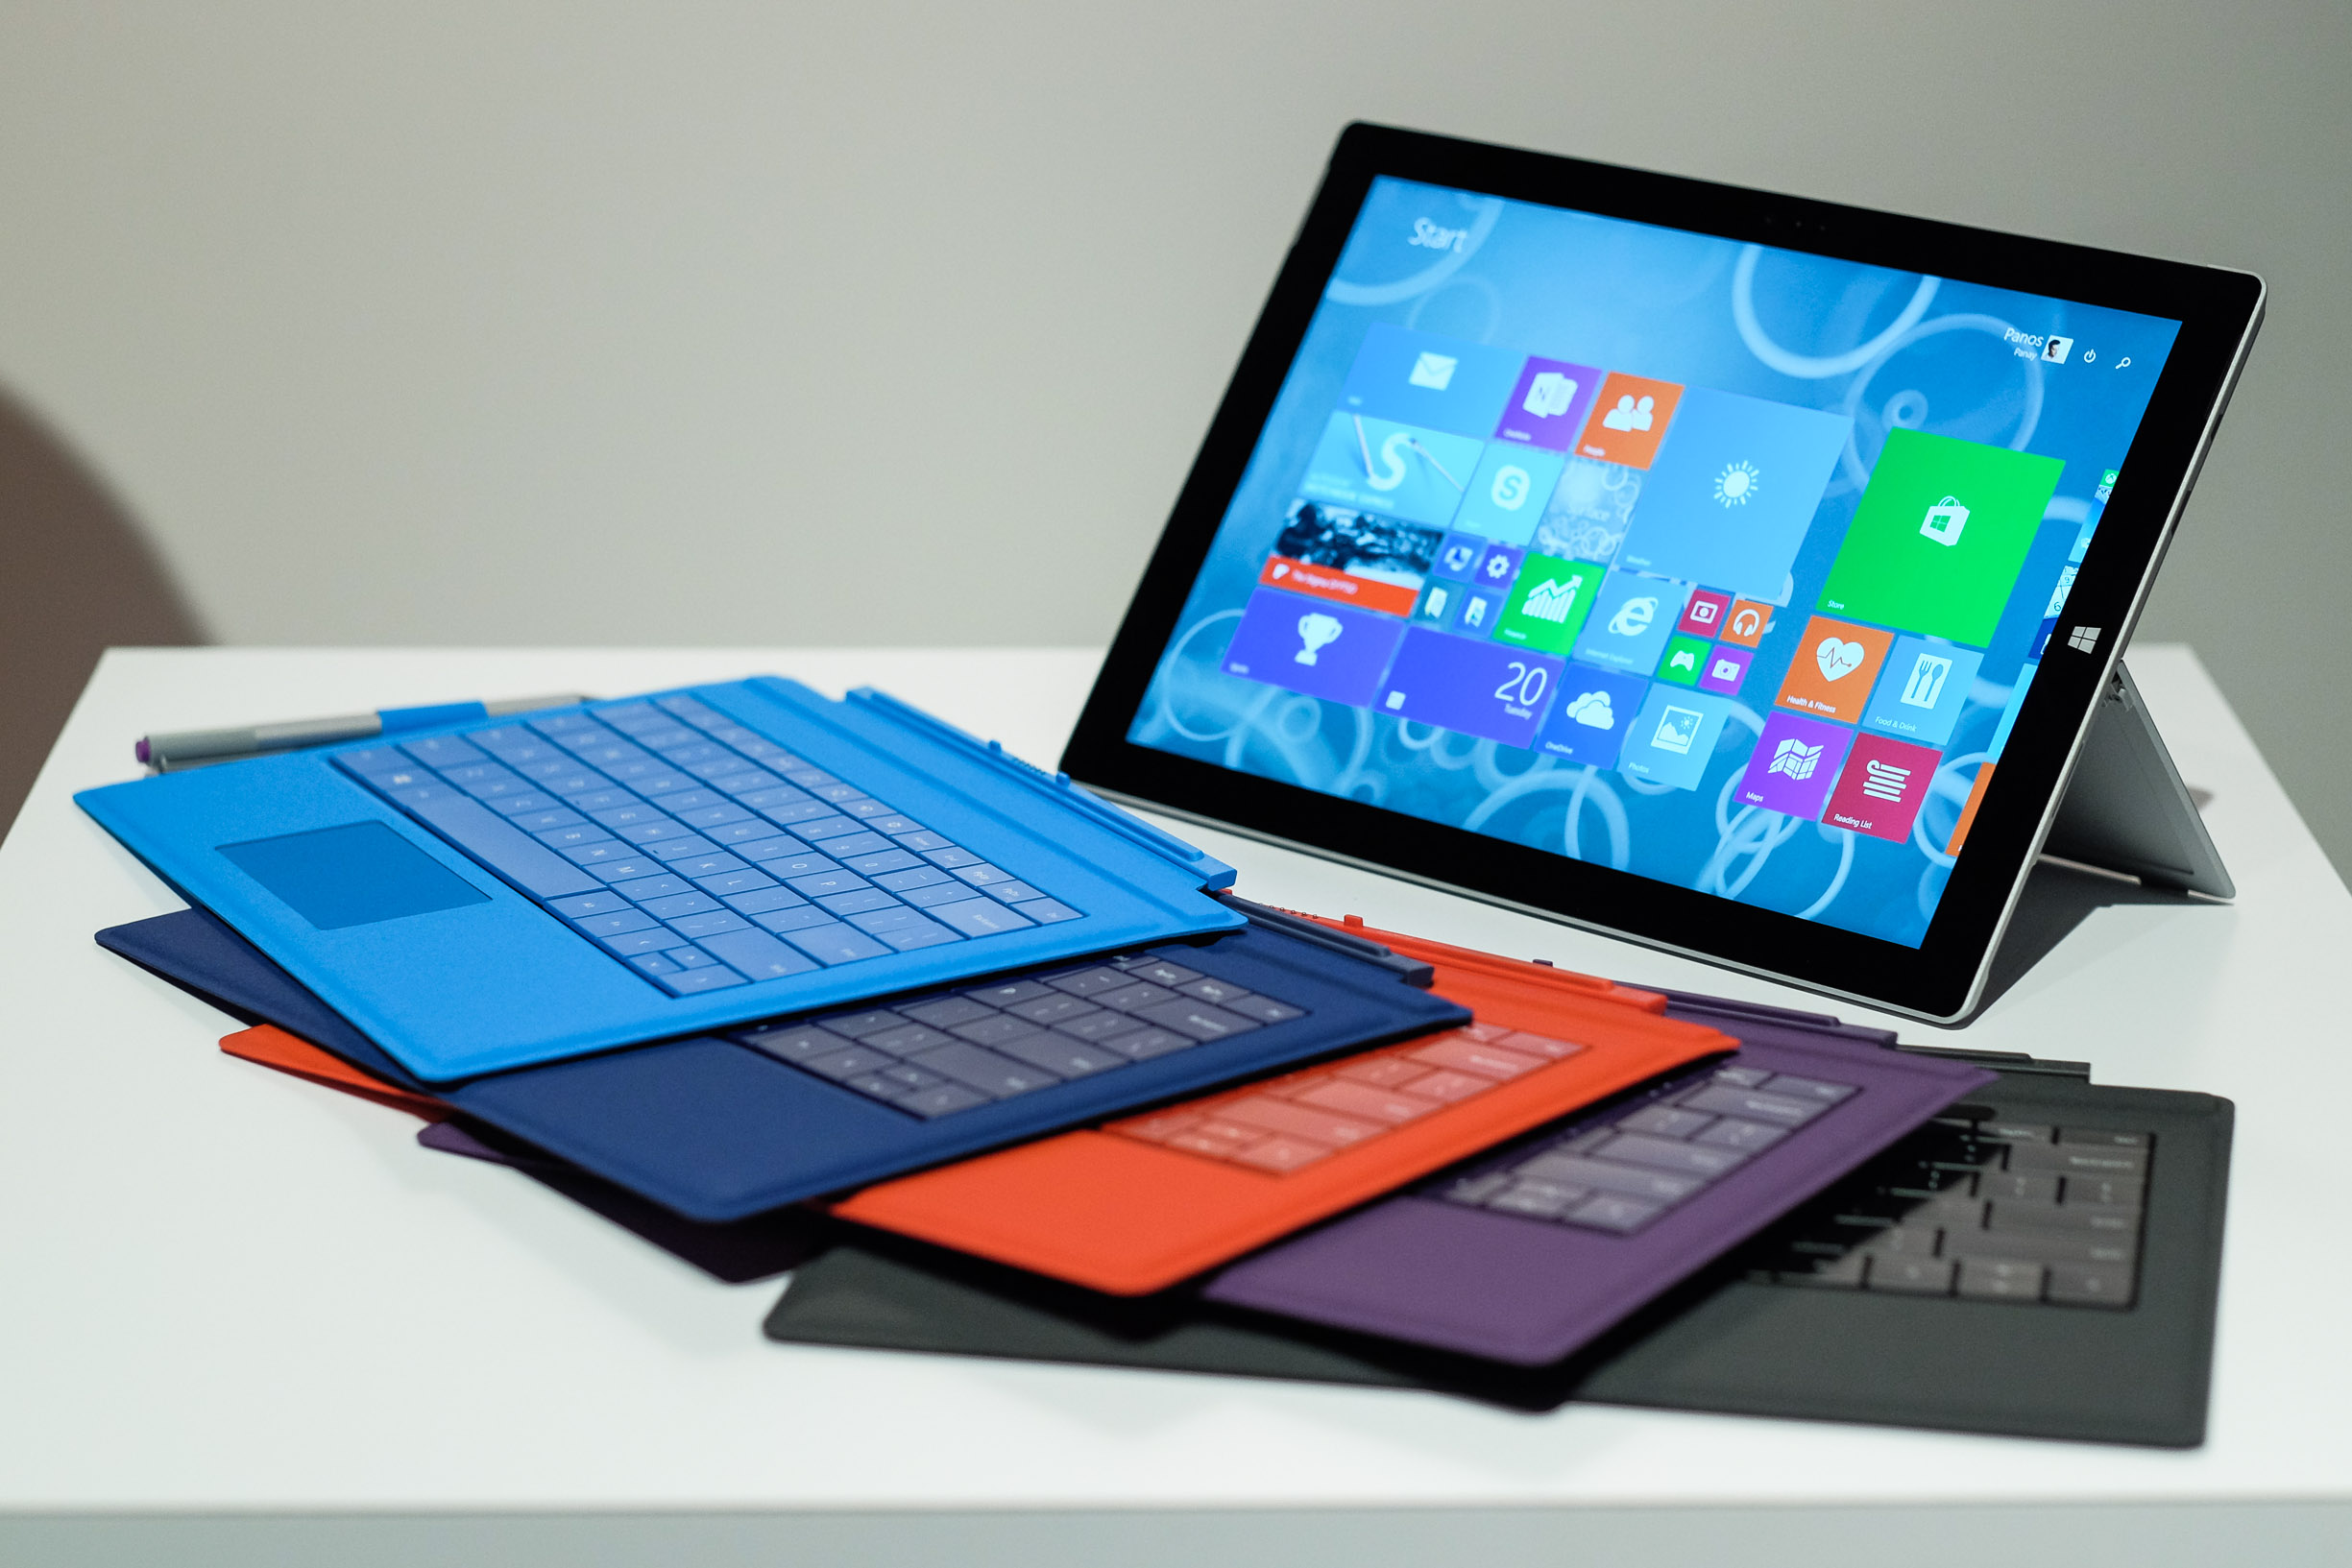 Surface Pro 3 Unboxing, Quick Review & Comparison